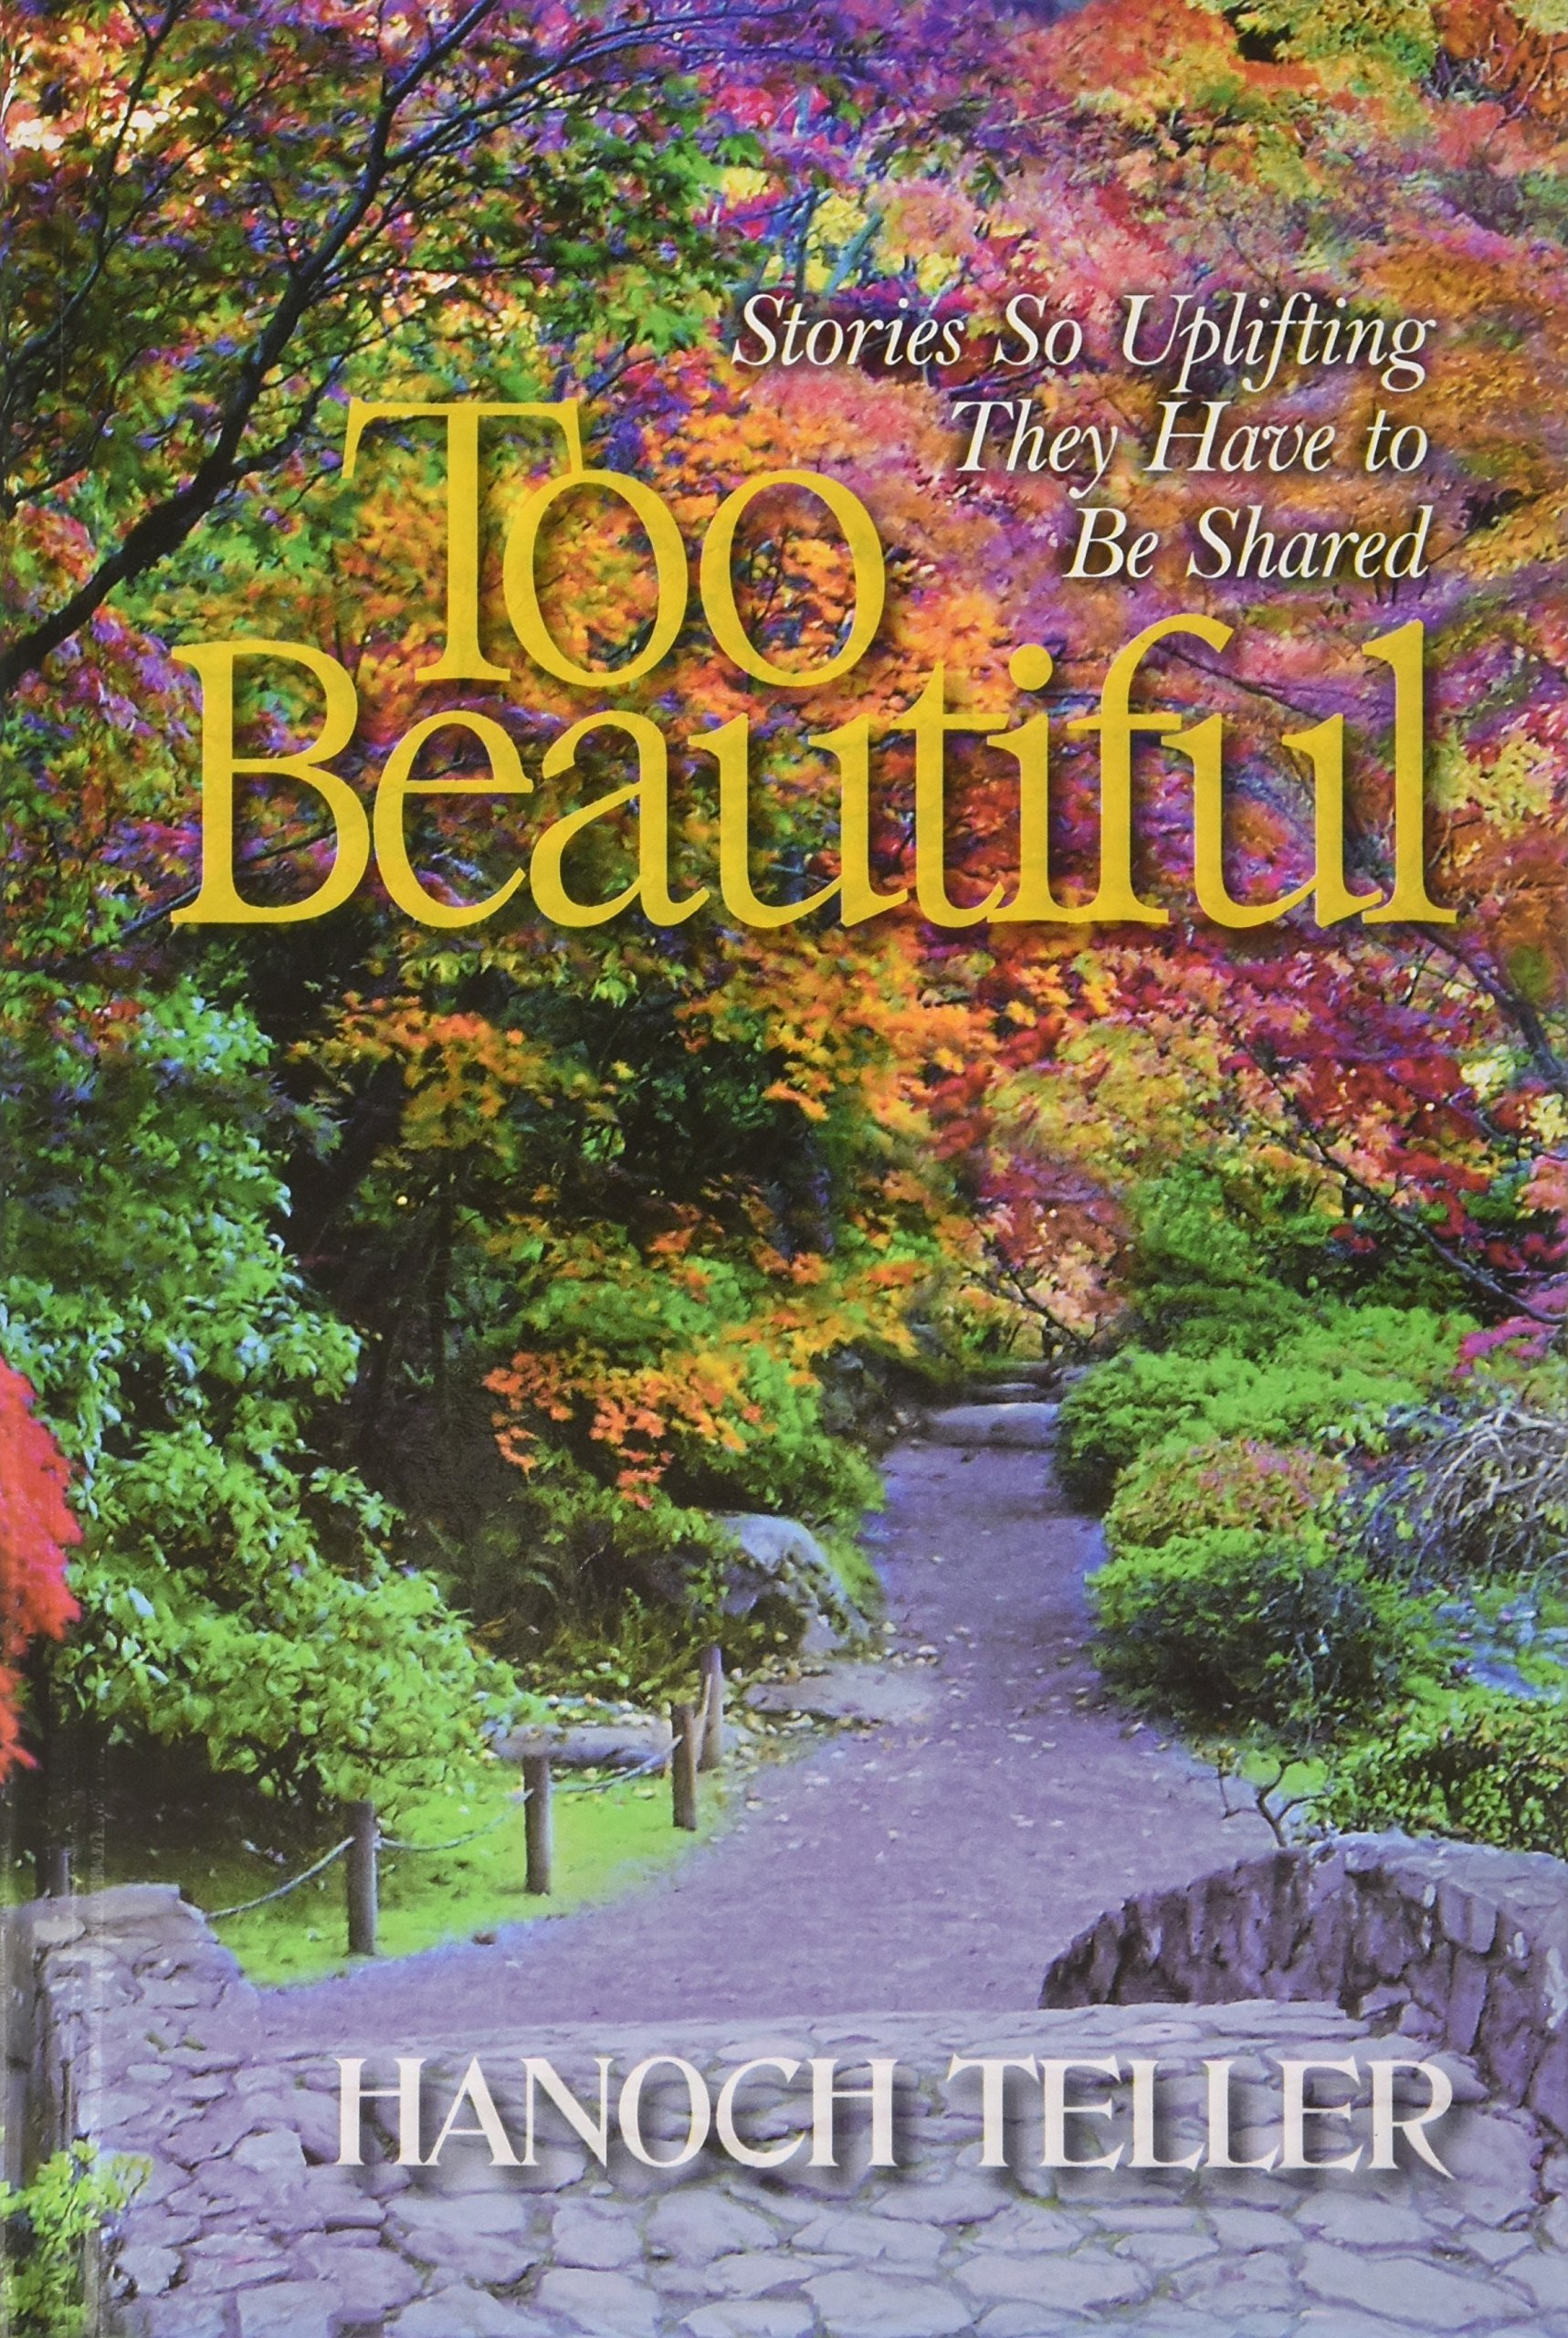 Too Beautiful: Stories So Uplifting They Have to Be Shared by Hanoch Teller